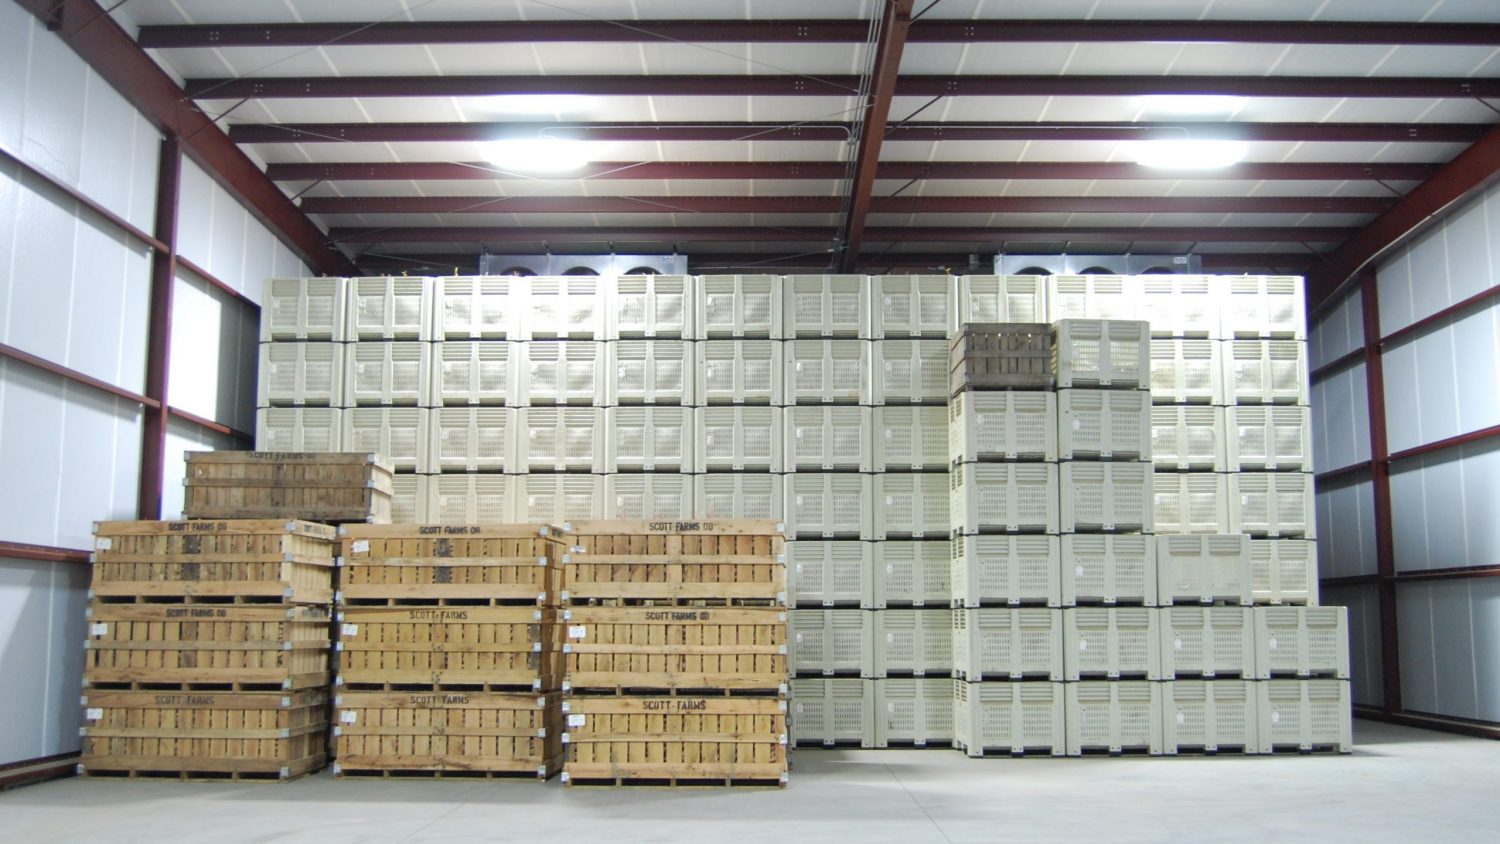 Large warehouse space with bins lined from wall to wall and floor to ceiling